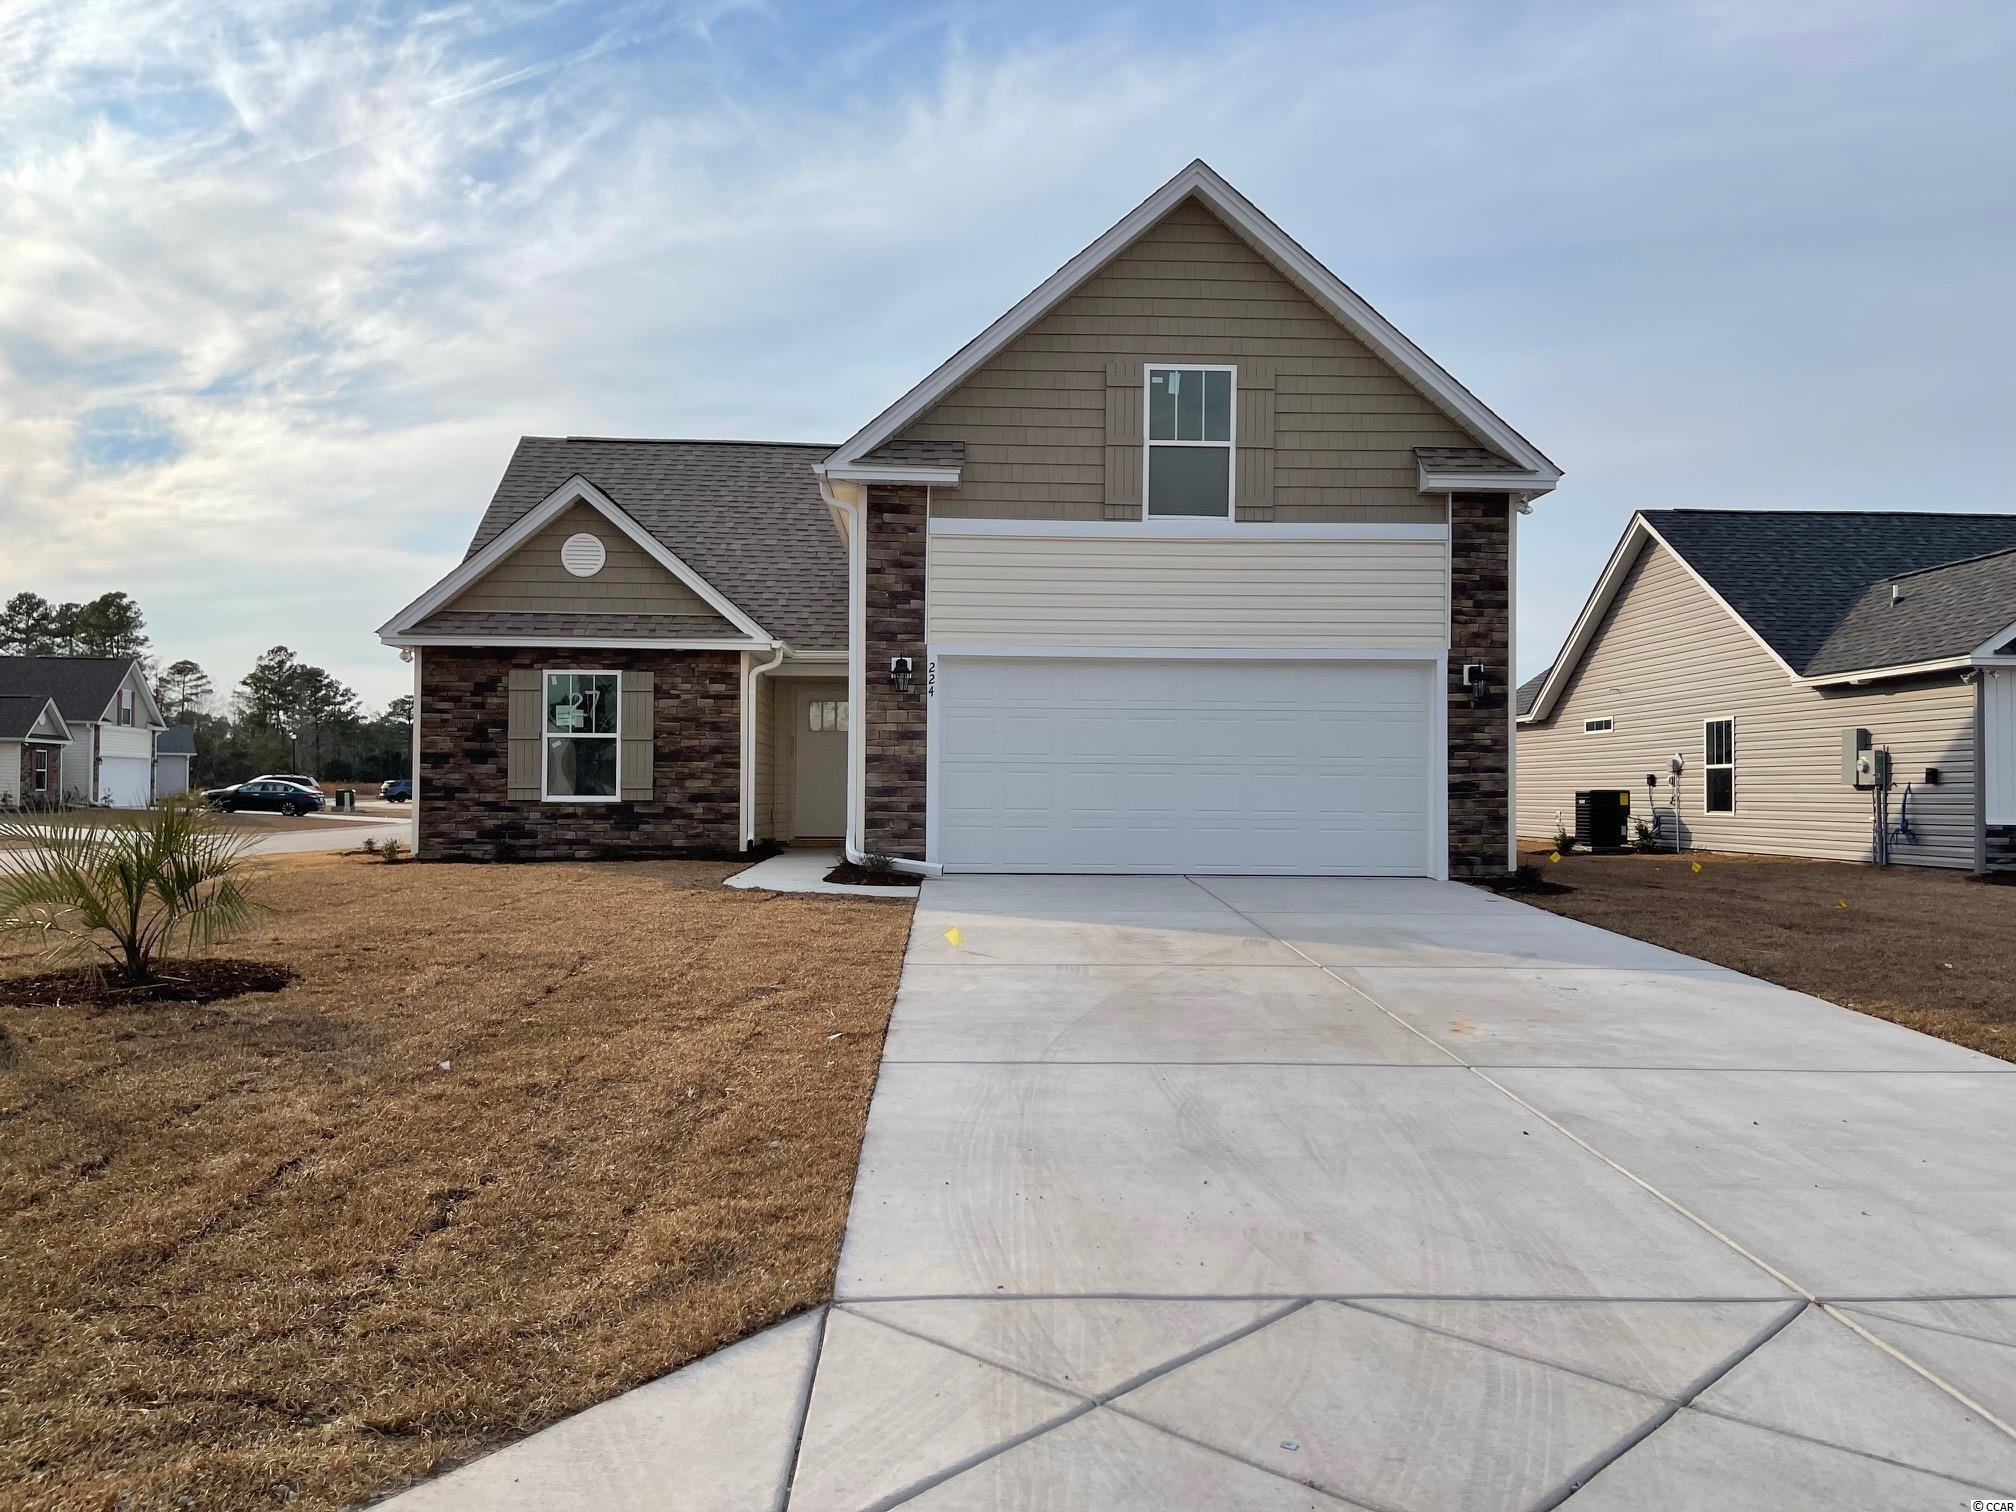 Red Hill commons is a new community located in Conway area only a few miles from the Beach and major shopping! This is the Onyx floor plan featuring 4 bedrooms, 3 baths. This home includes a finished 2 car garage with garage openers. Ceramic tile in all bathrooms, kitchen and Laundry room, Granite Kitchen Countertops, with hardware on kitchen cabinets. Vaulted ceiling in Family room, every bedroom. Home also includes TAEXX pest control tubing!! Stone accents on the exterior as well. All measurements are approximate *Photos of a similar home* Some items on the photos may be an additional cost. Anticipating completion time winter 2022*